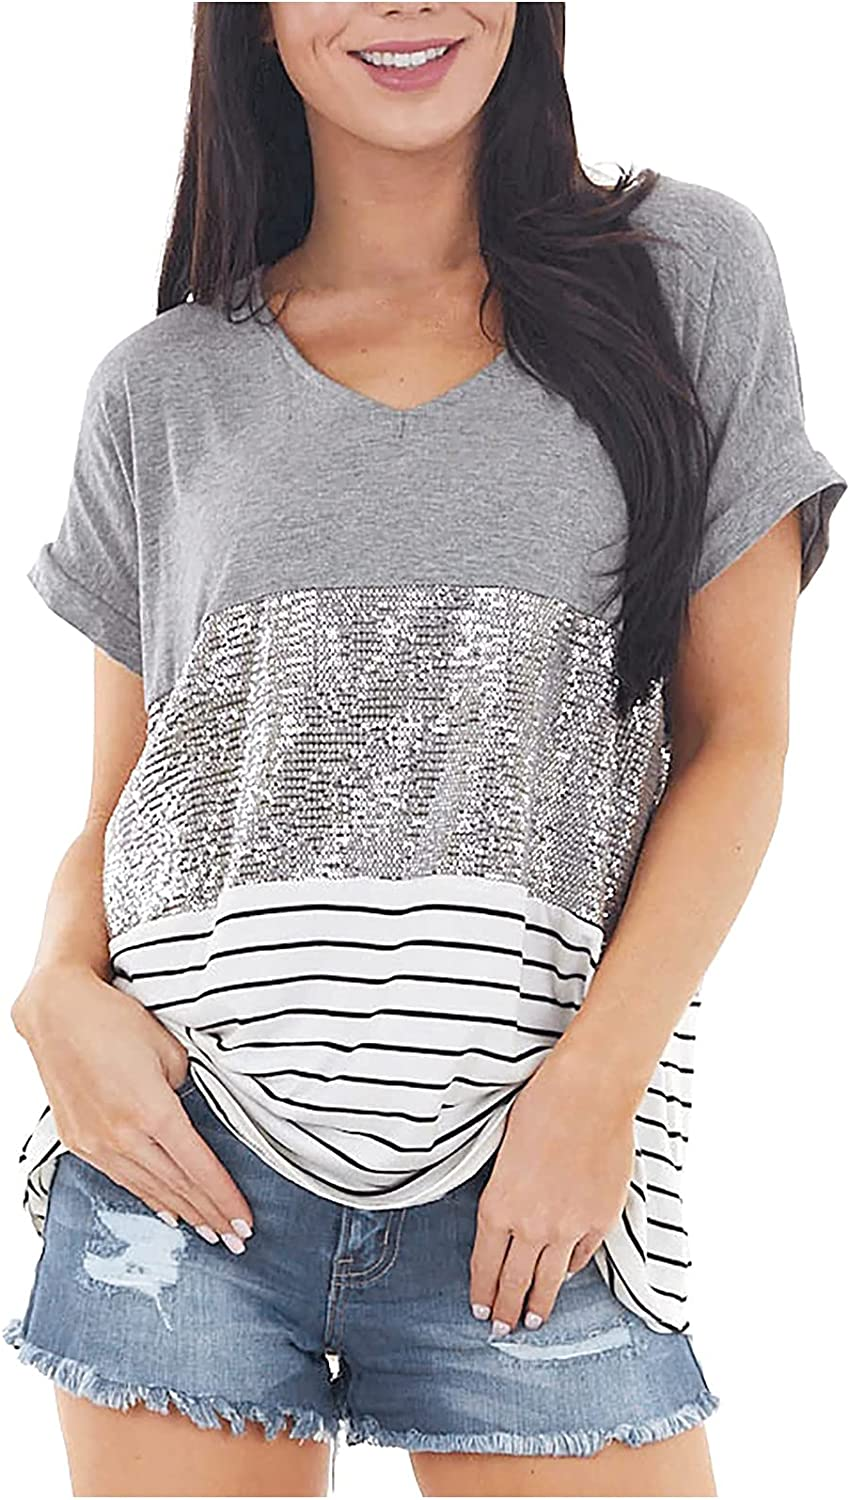 Womens Summer Tops Women's Tops Sequins Stitching Contrast Color Round Neck Short Sleeves Tops Loose Fit Crewneck Tees